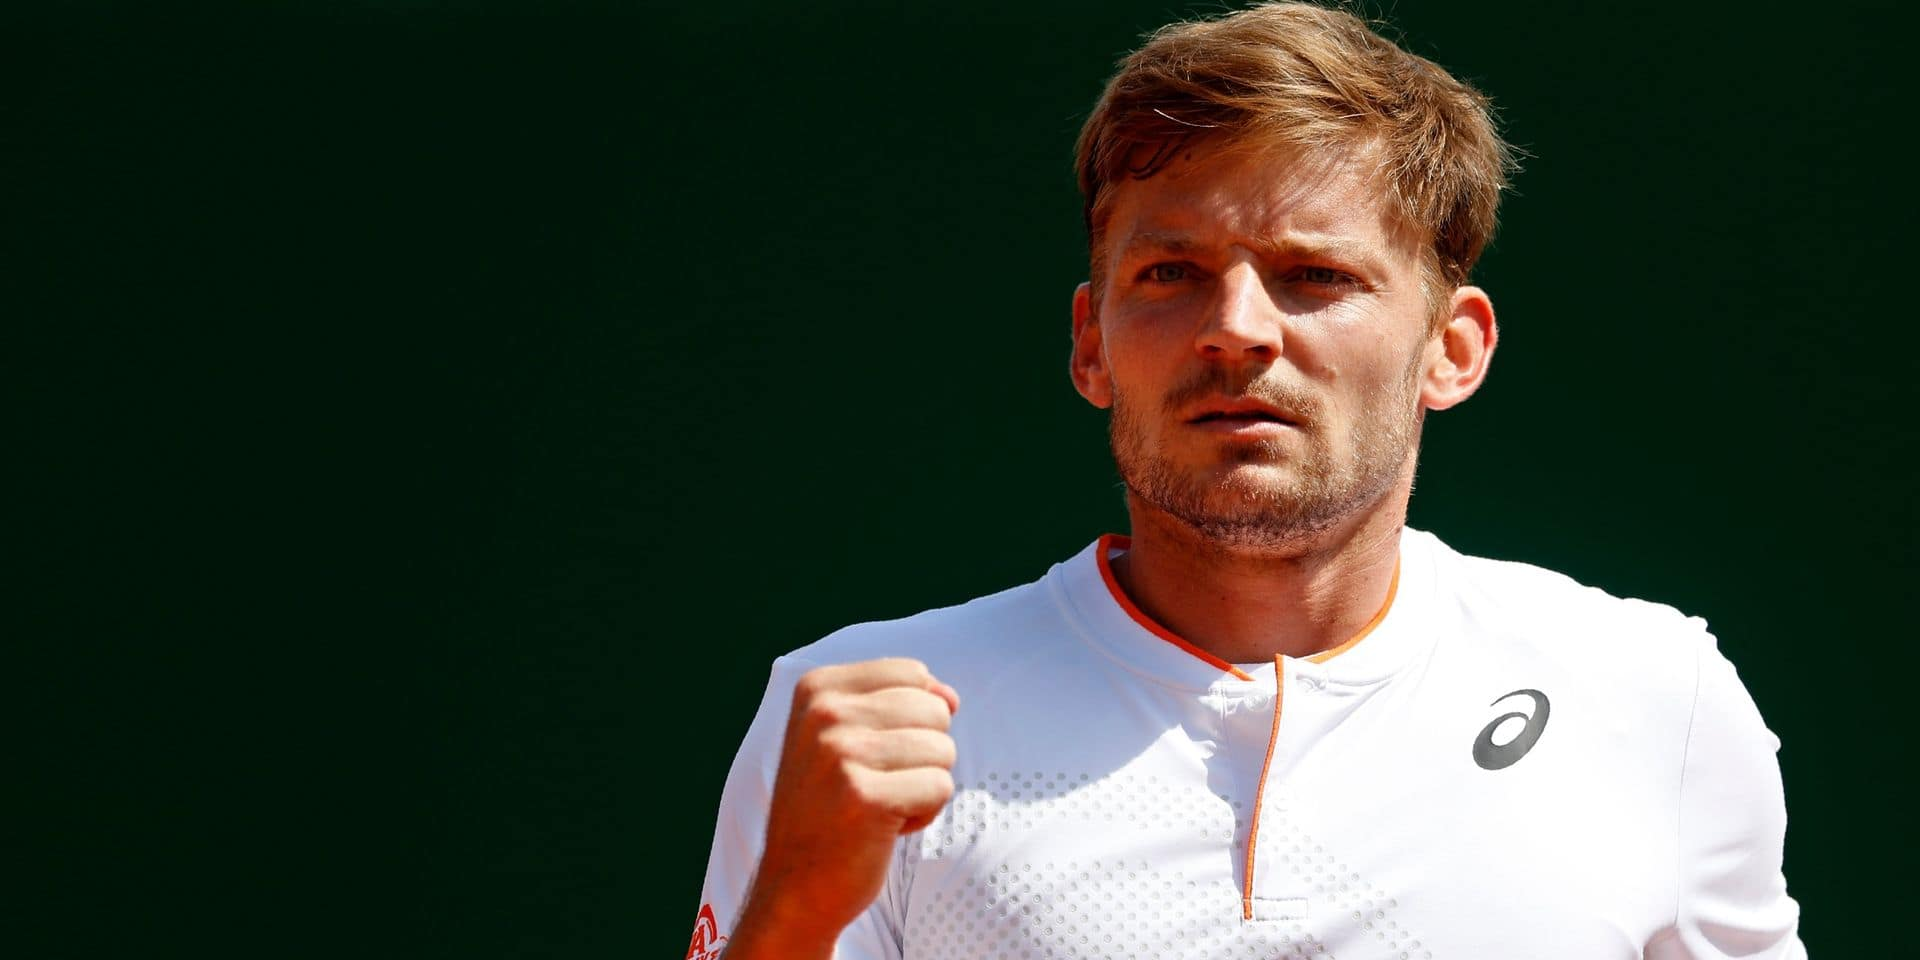 David Goffin contre Pierre-Hugues Herbert ou un qualifié au 2e tour à Barcelone